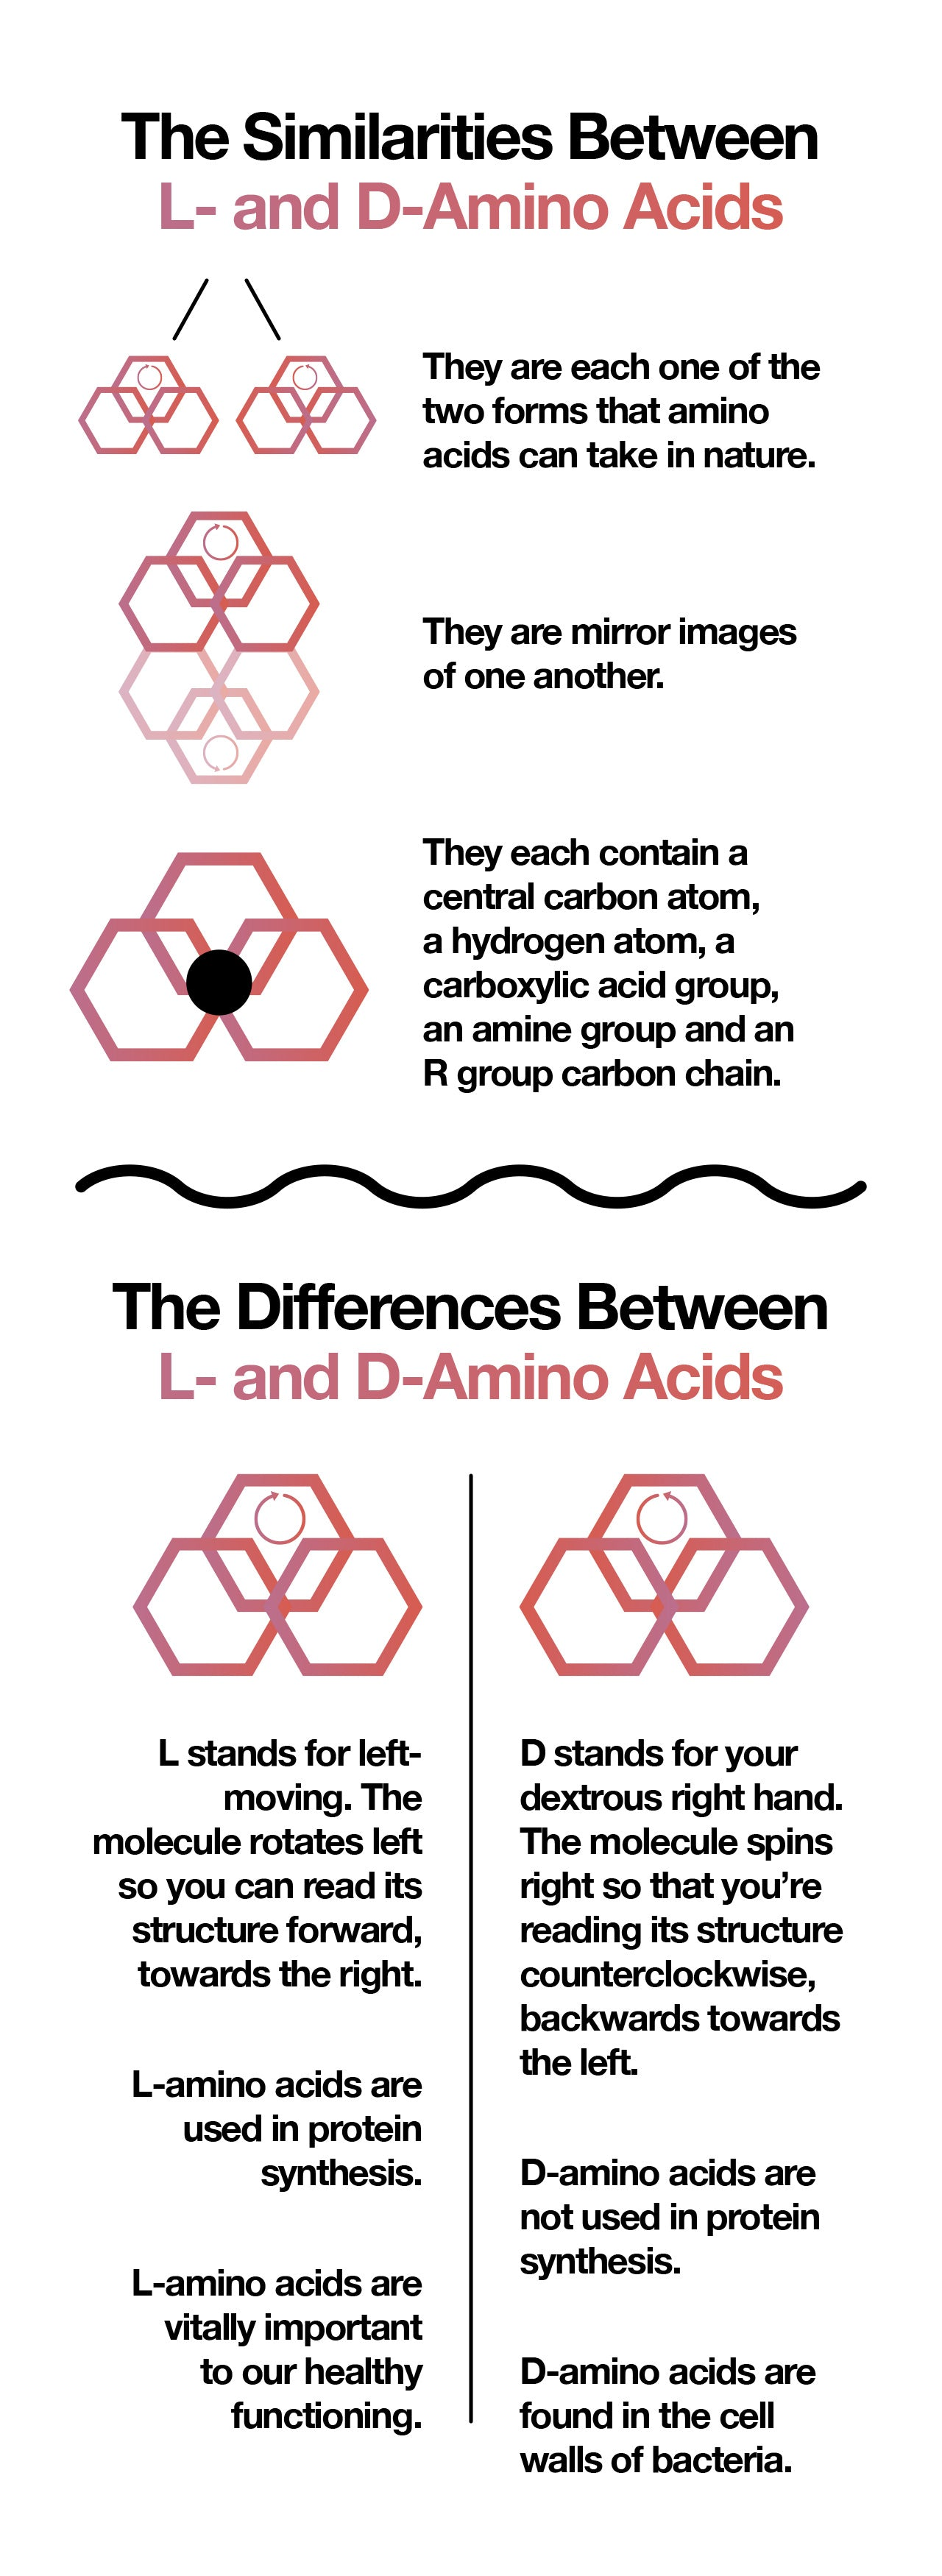 The difference between L- vs. D-amino acids.